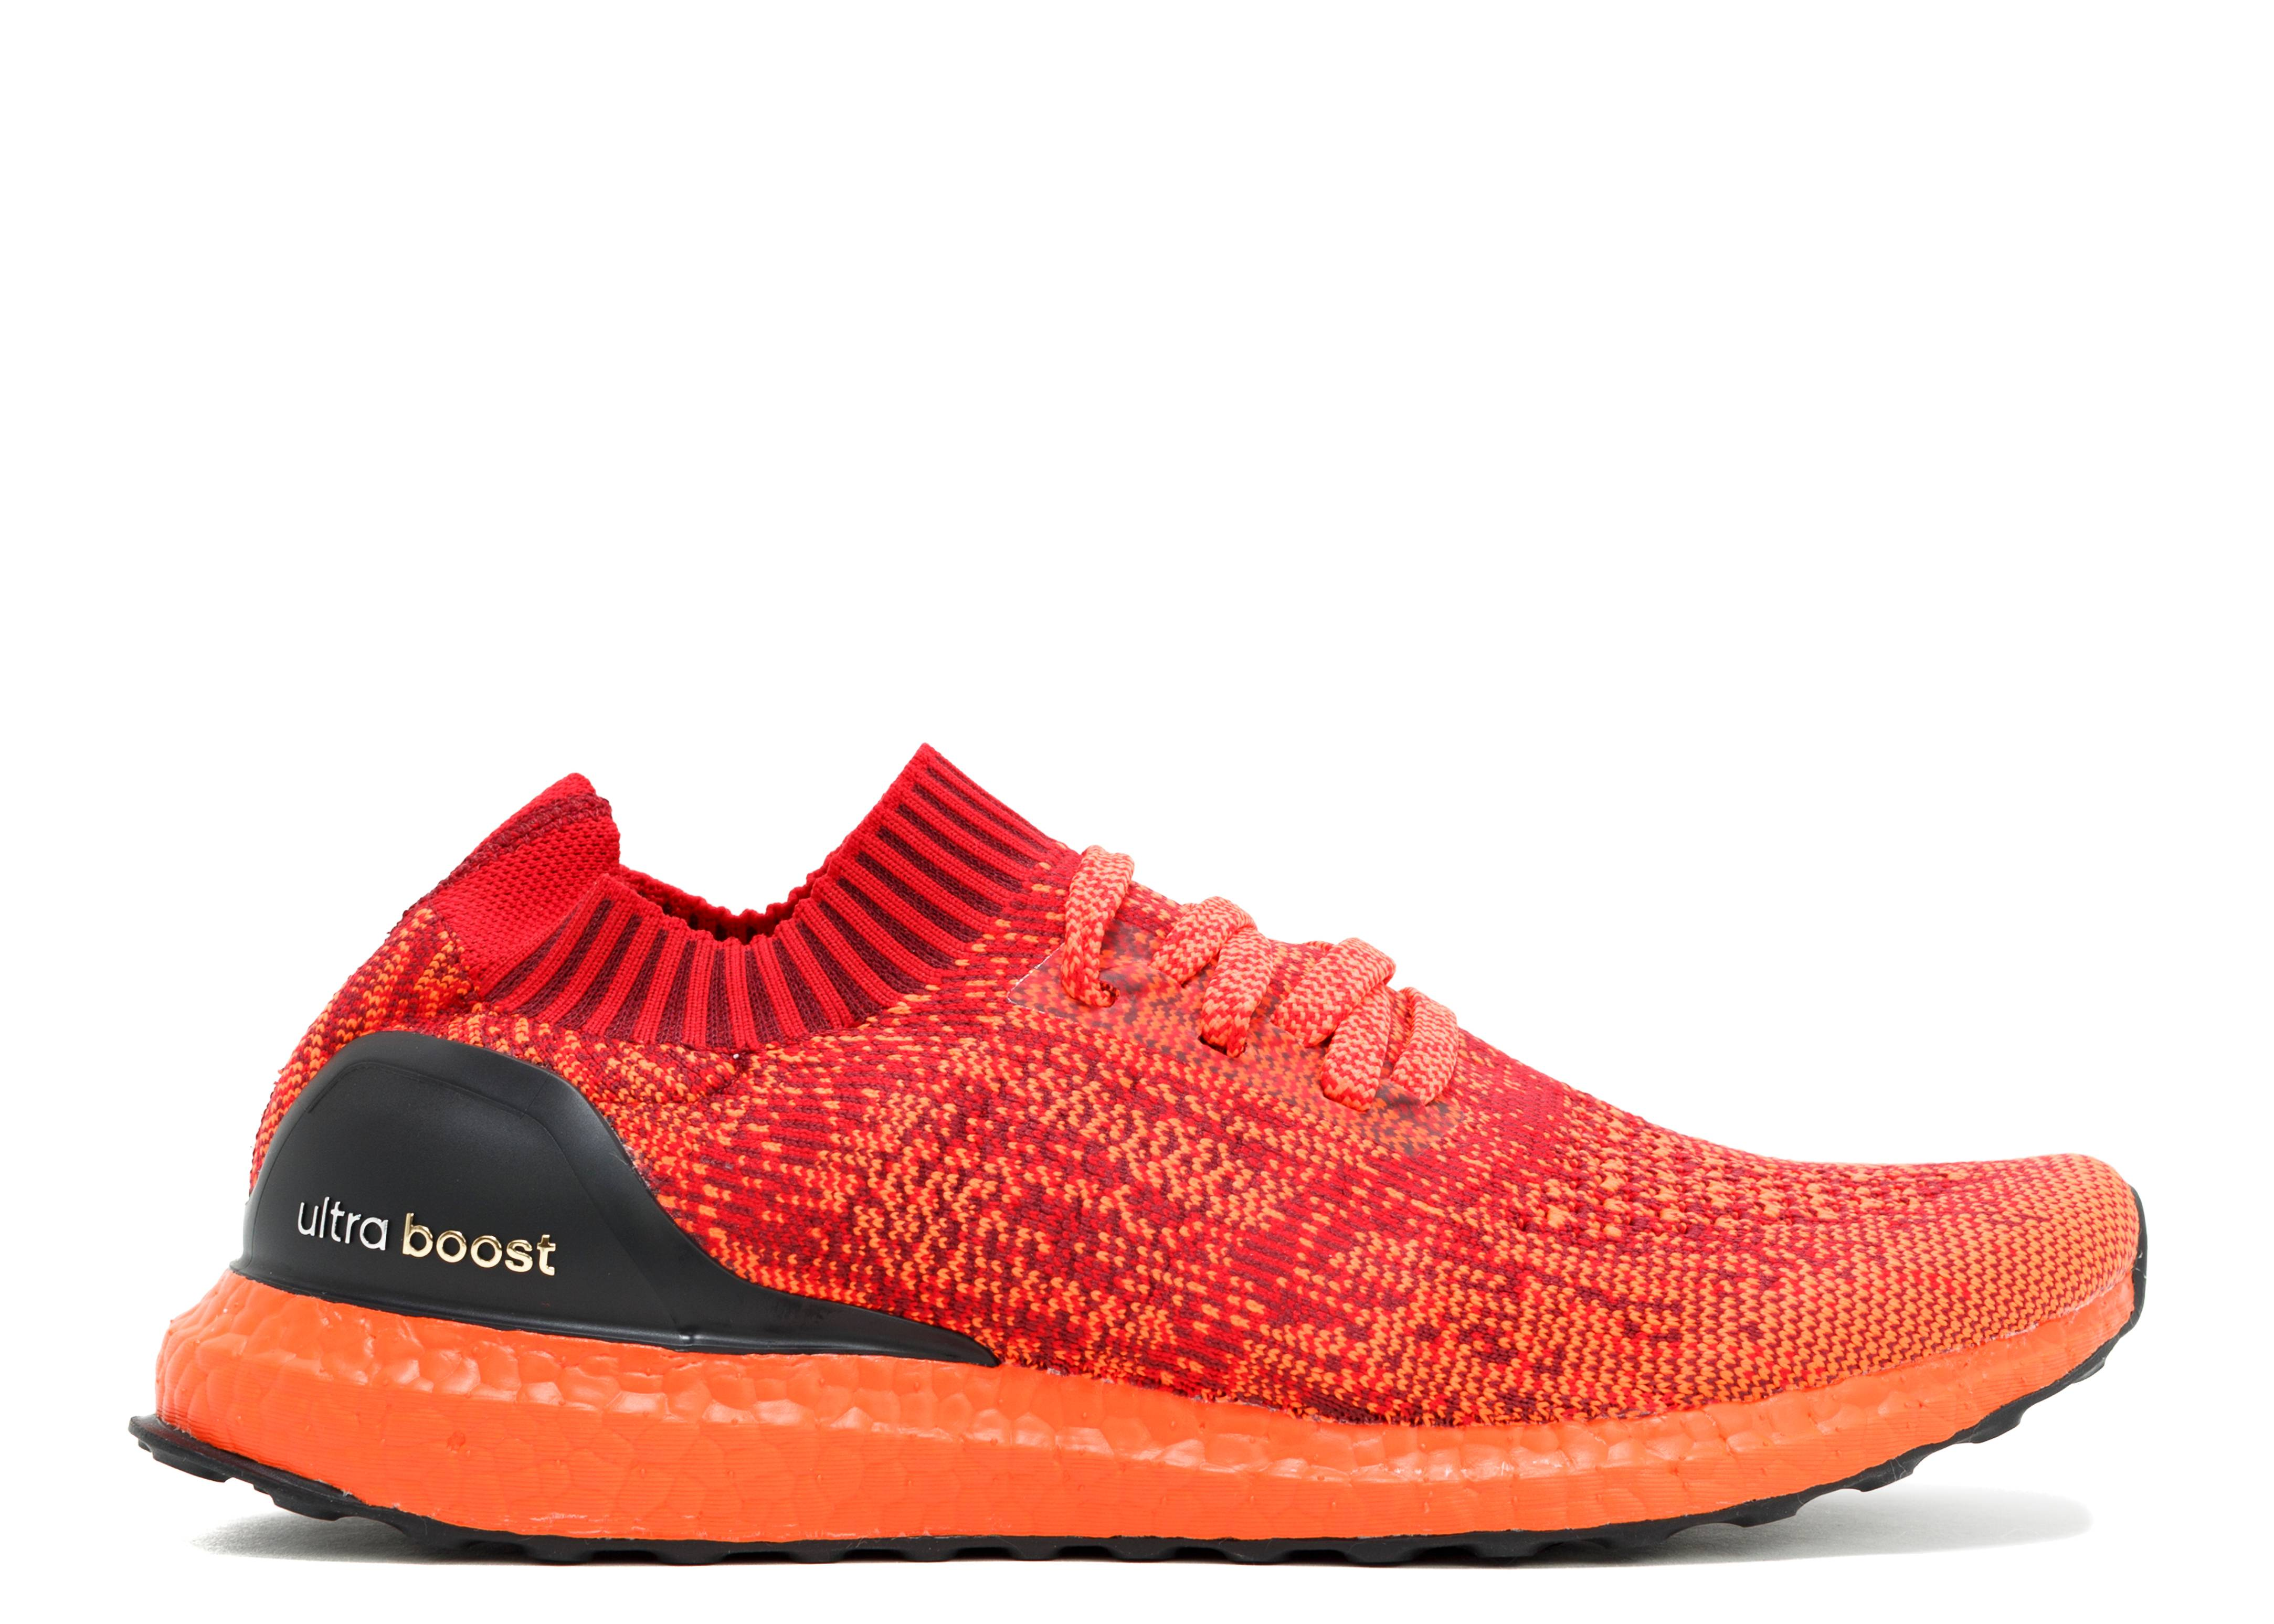 2c64dcb15a2 Ultra Boost Uncaged Ltd - Adidas - bb4678 - red black